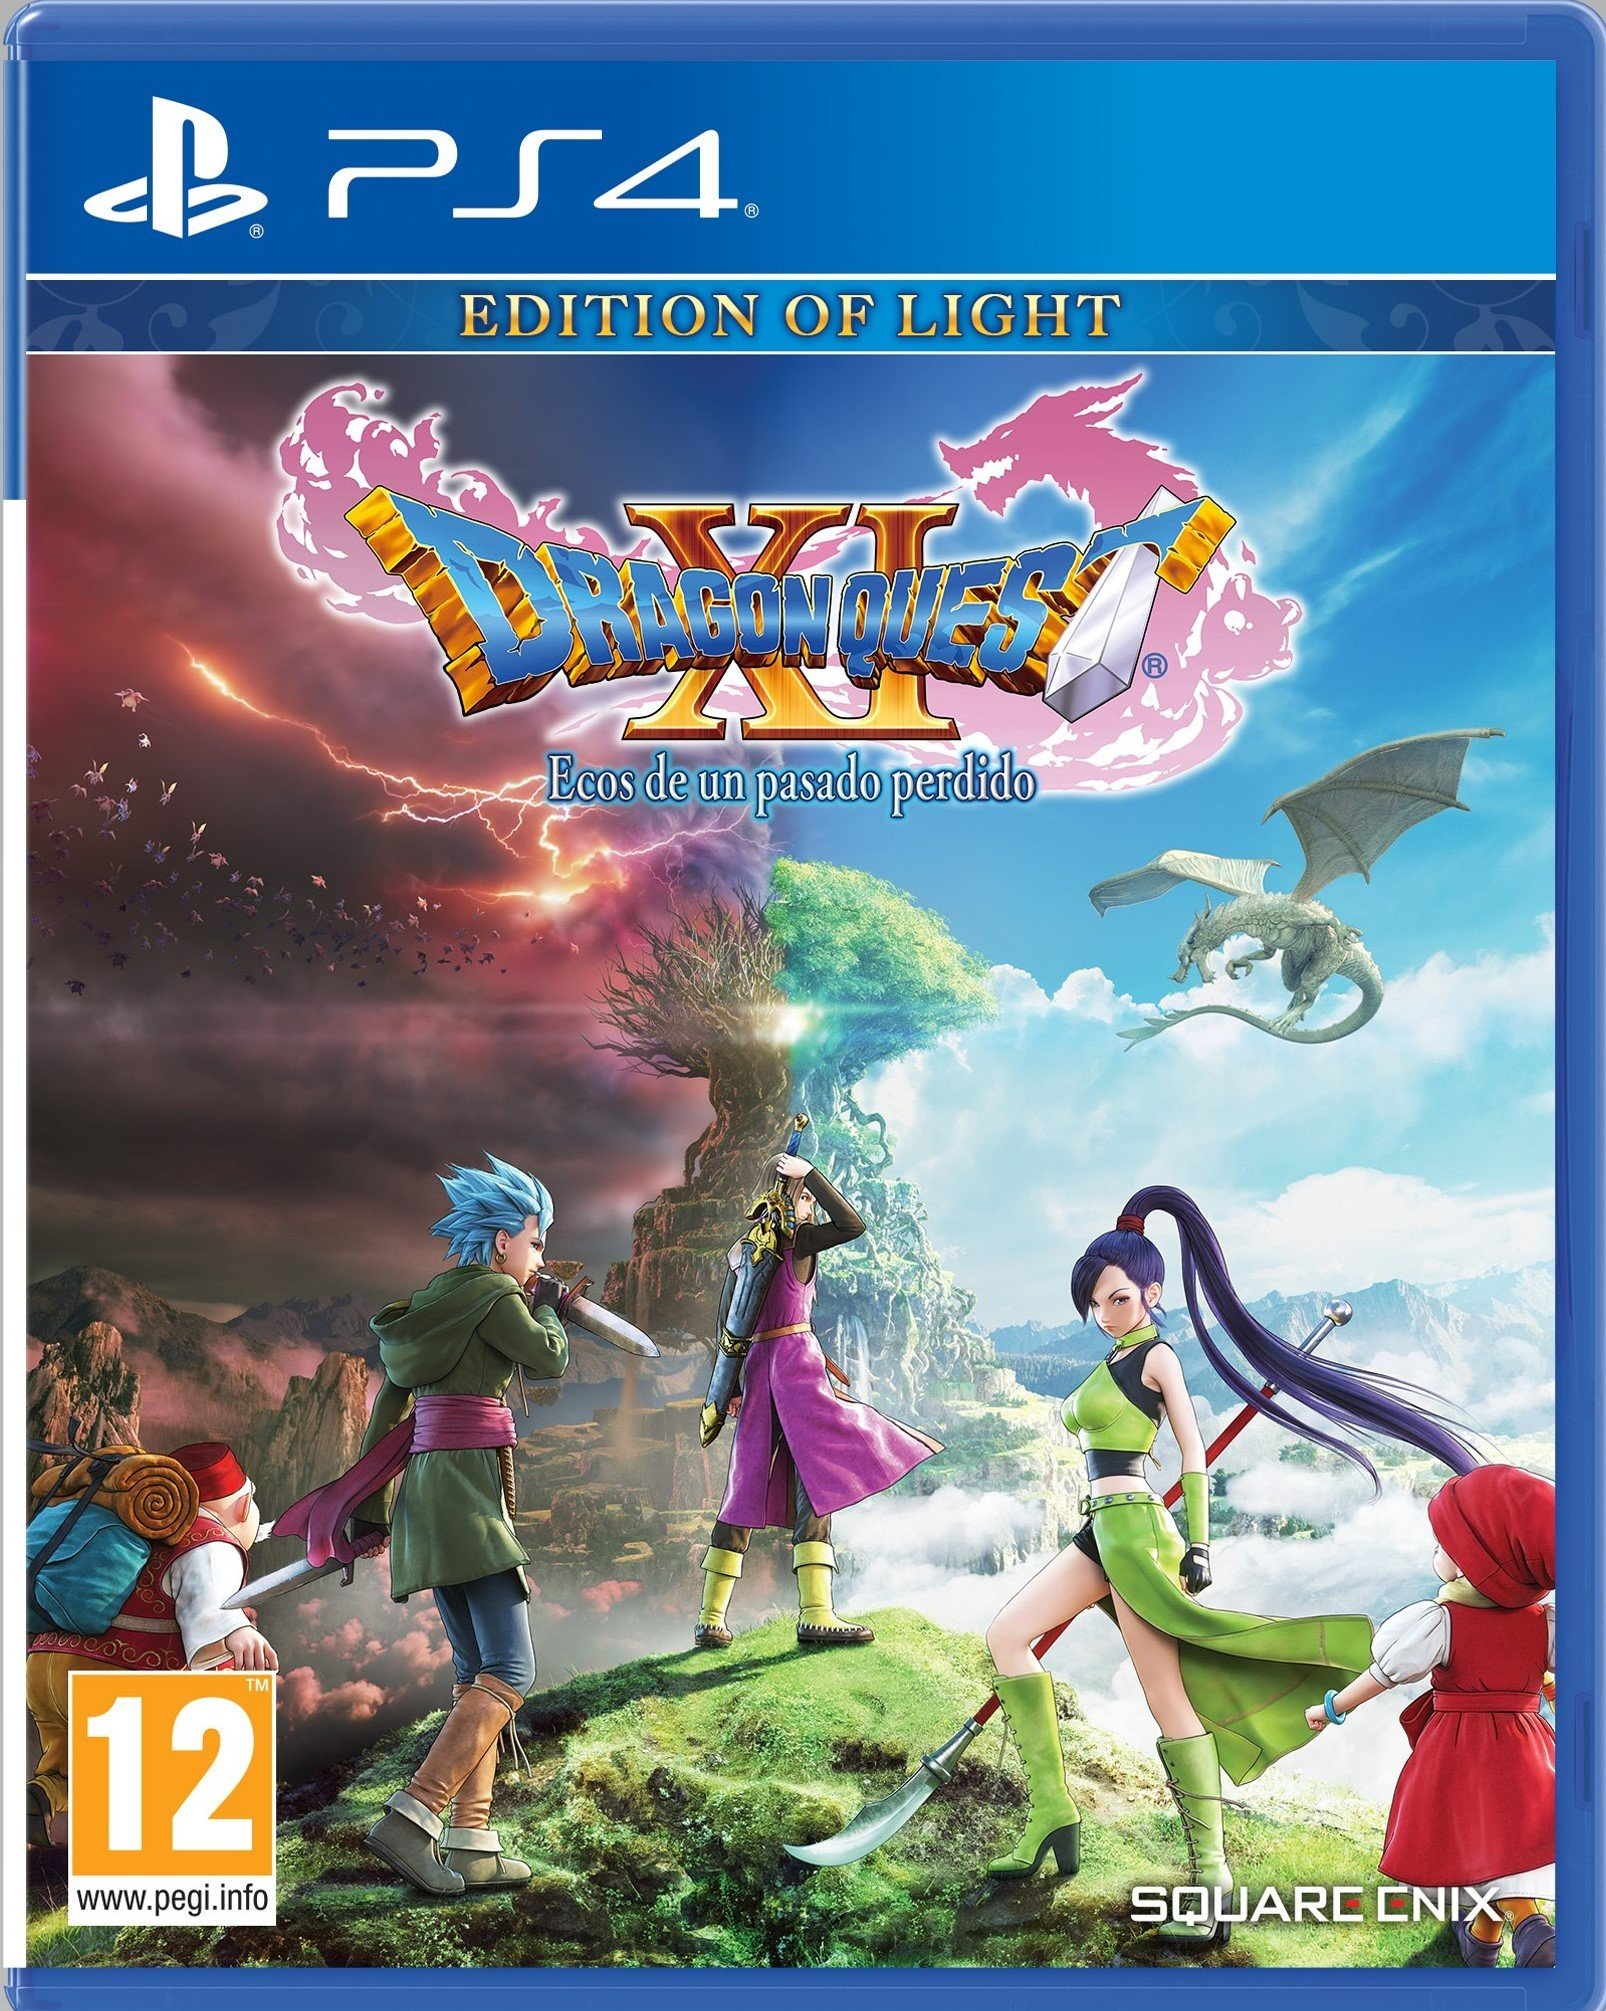 Dragon Quest XI : Ecos de un Pasado Perdido Edition of Light product image